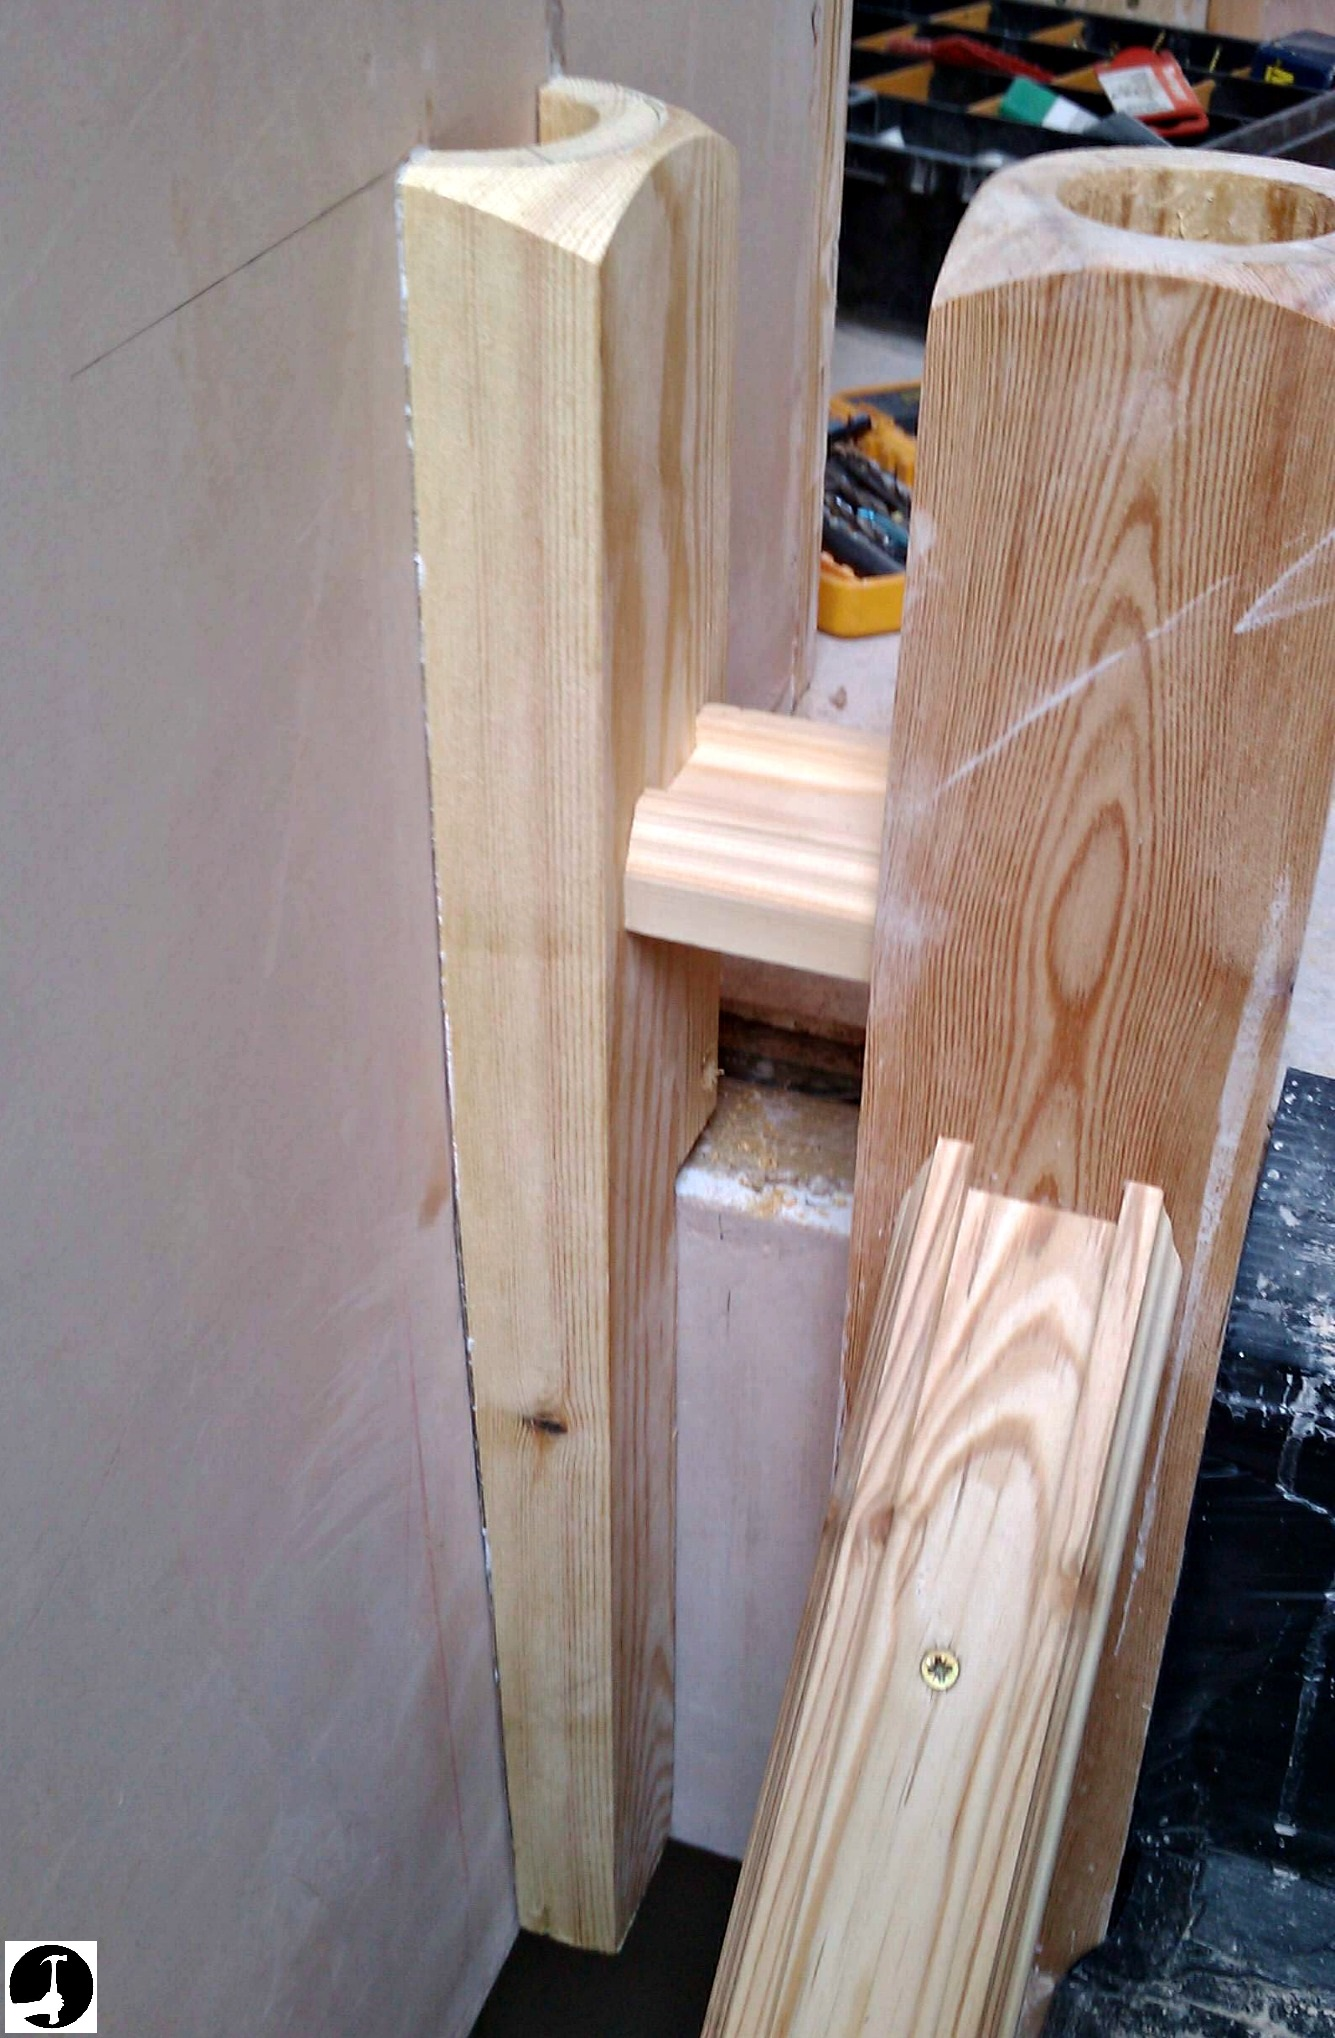 Half newel base cut and glued to the wall